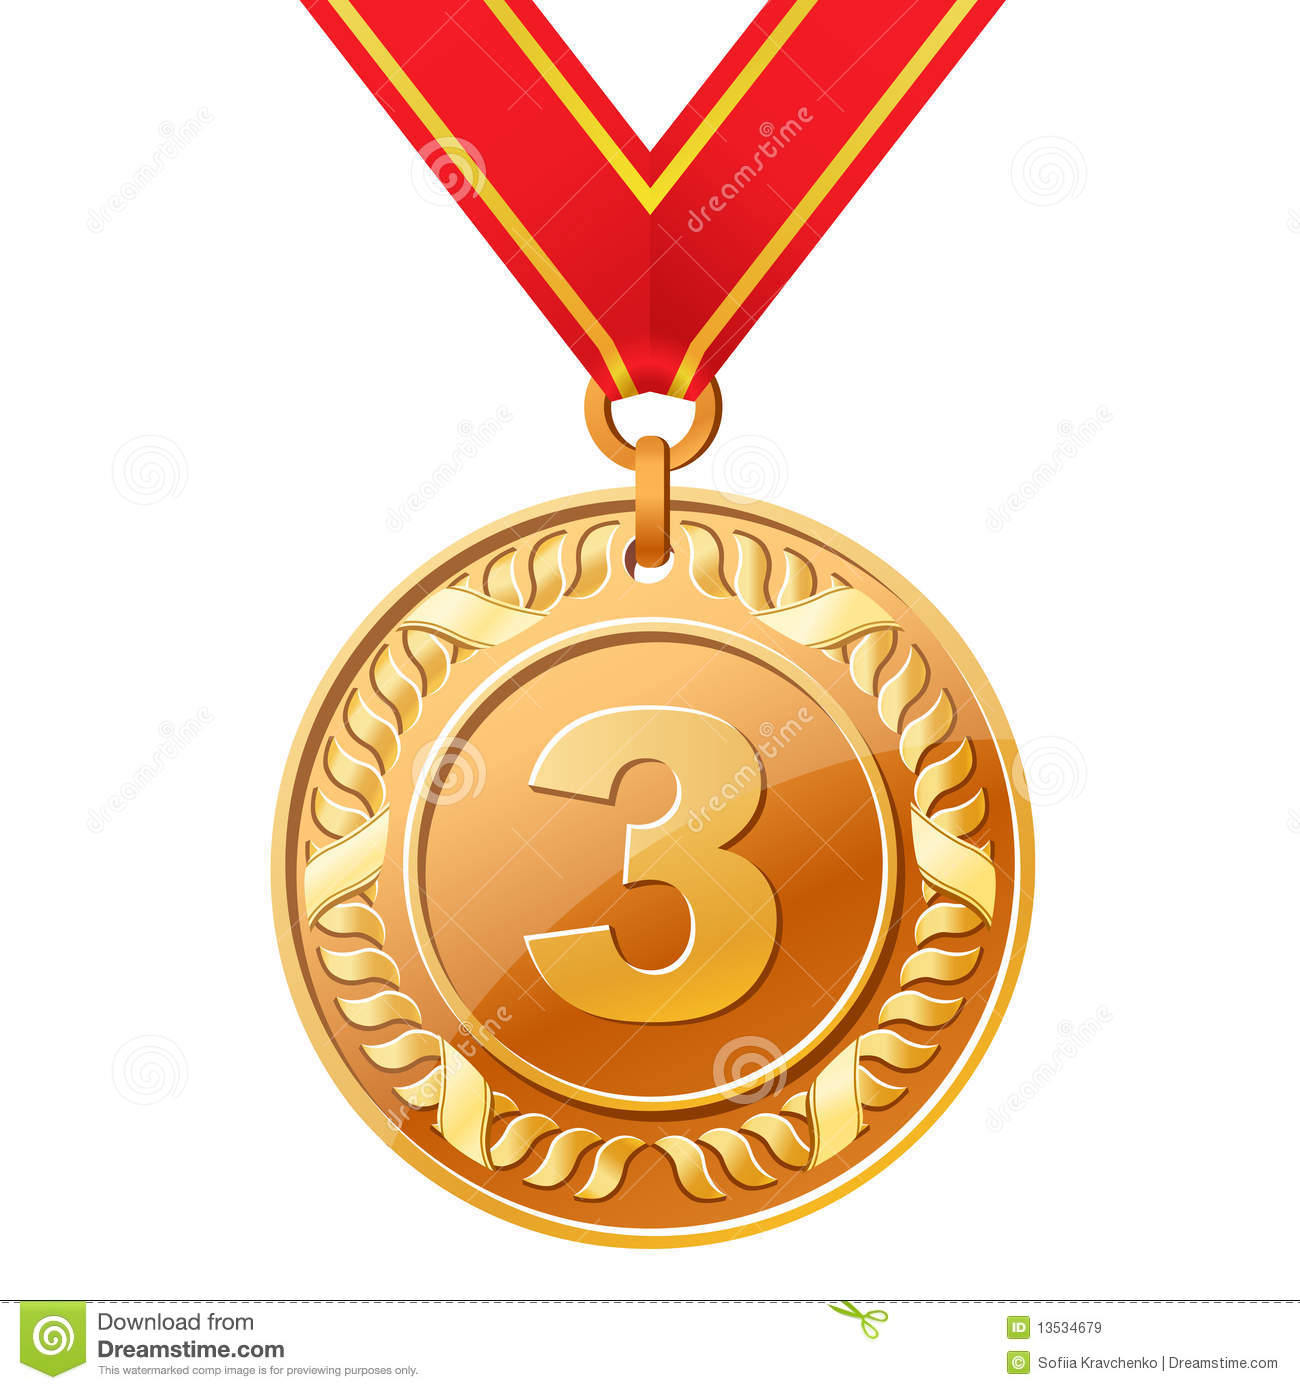 Bronze medal clipart - Clipground